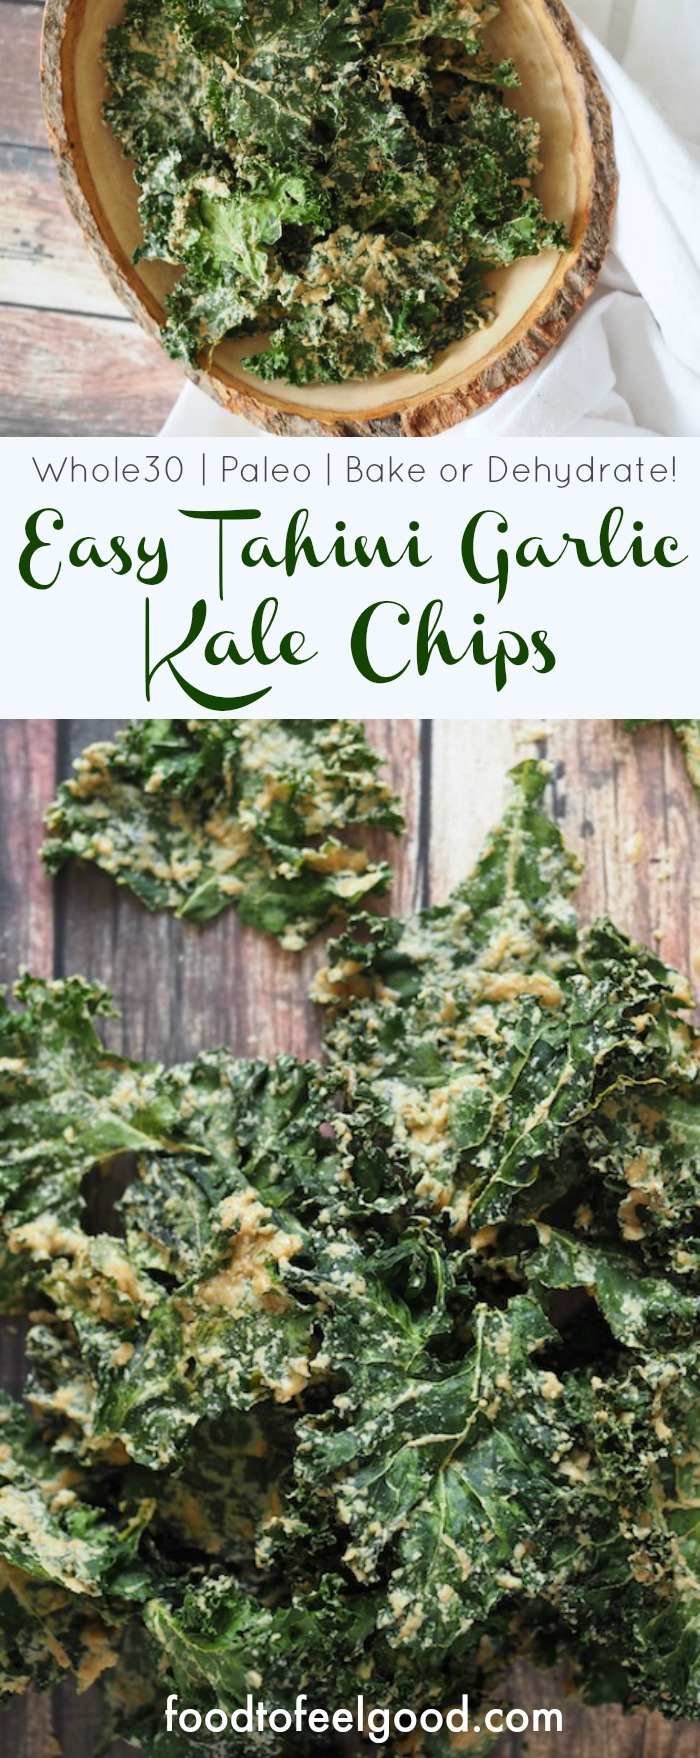 Easy Tahini Garlic Kale Chips | Vegan | Paleo | Whole30 | These savory, crunchy kale chips are a great snack when you want to eat clean and they're really easy to make, can use an oven or a dehydrator! #garlickalechips #kalechipsrecipe #whole30snacks #easykalechips